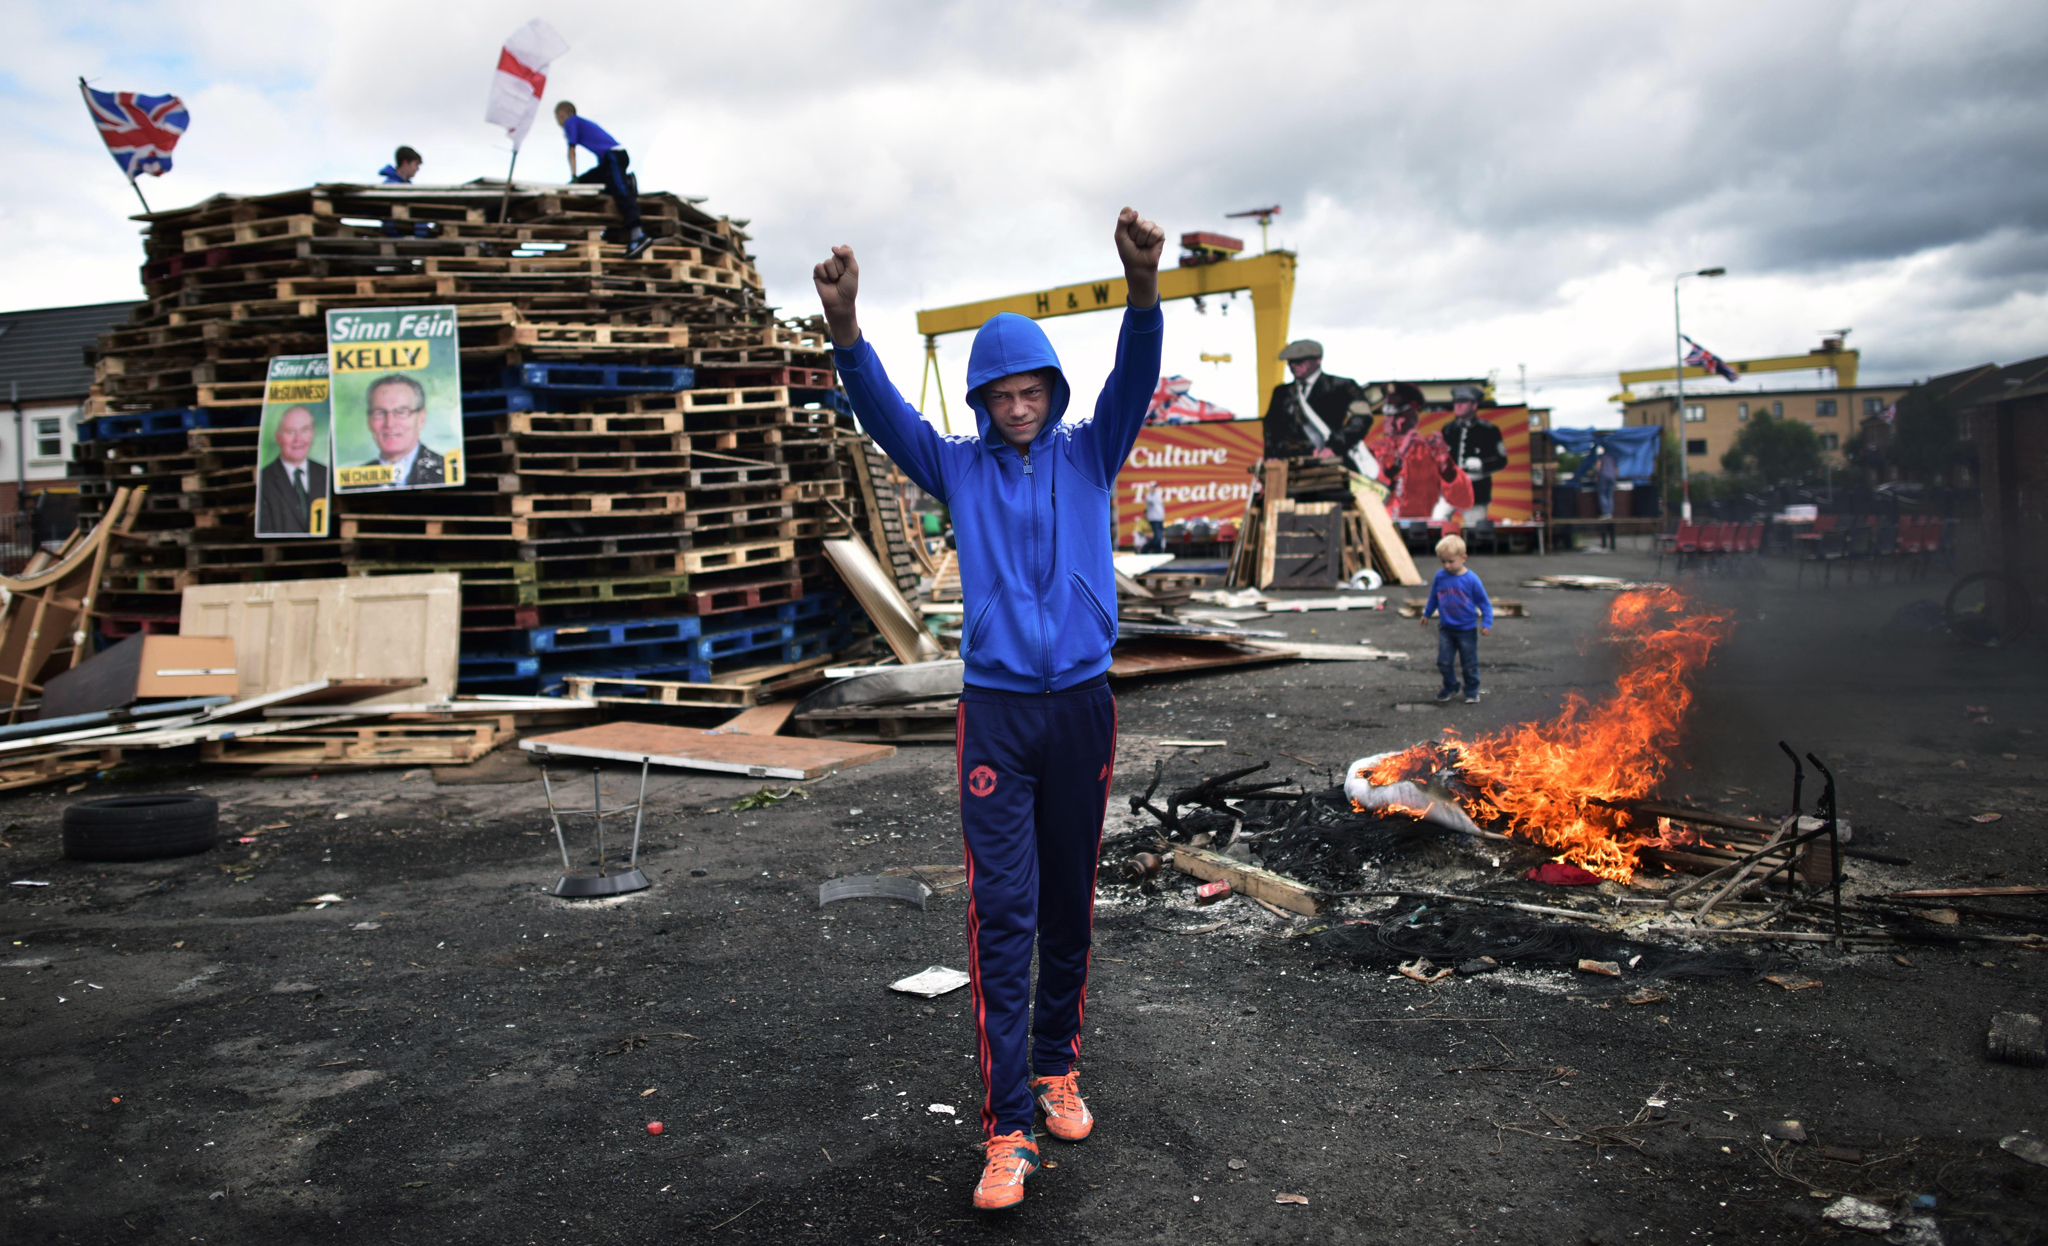 Loyalists make final preparations to their bonfire on the Newtownards road on July 11, 2016 in Belfast, Northern Ireland. The lighting of the bonfires at midnight on the eleventh night marks the start of the annual twelfth of July celebrations within the protestant community. The Orange marches and demonstrations celebrate the Battle of the Boyne in 1690 when the Protestant King William of Orange defeated the Catholic King James II on the banks of the river Boyne.